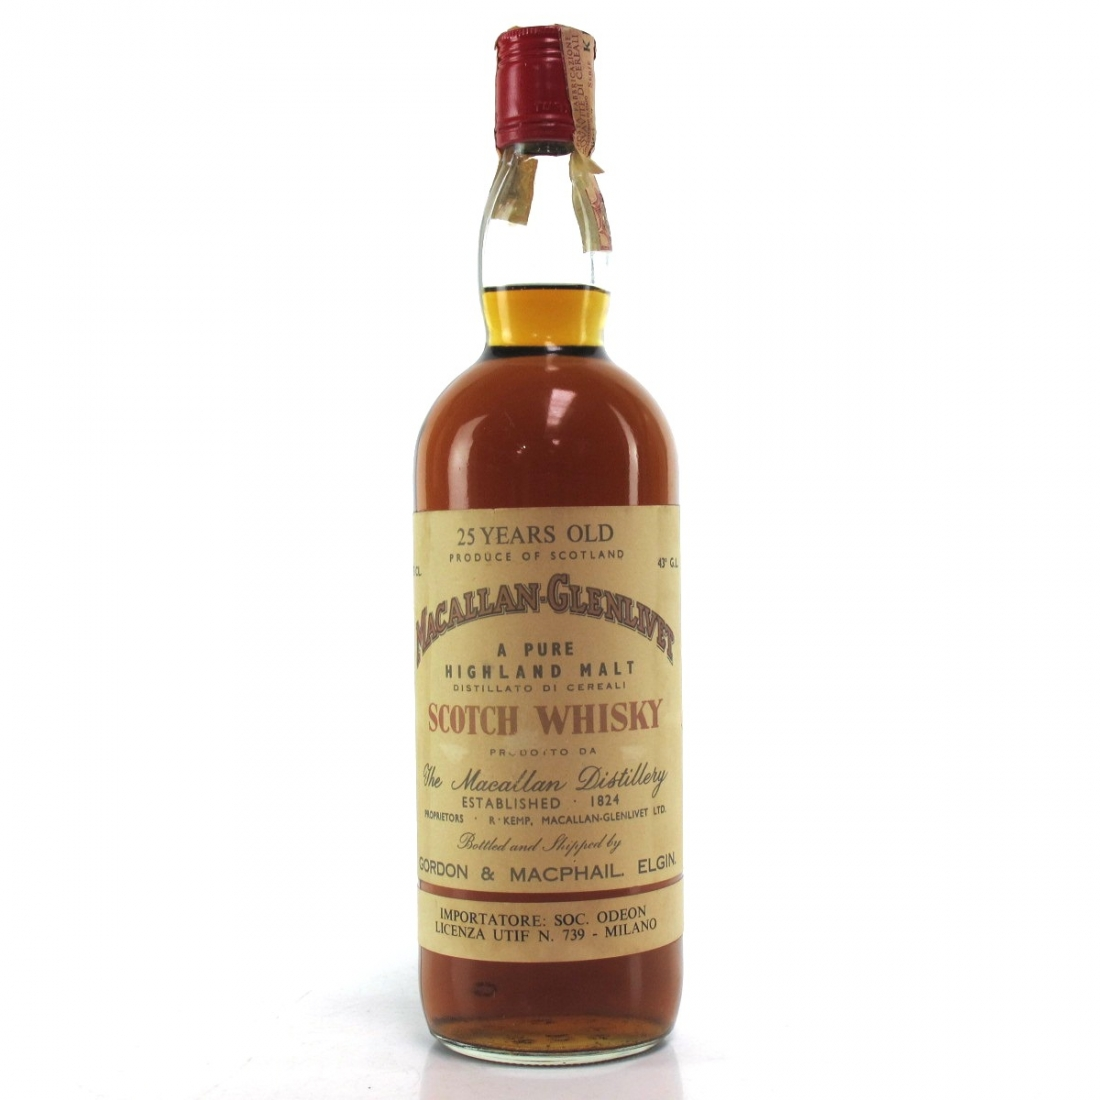 Macallan 25 Year Old Gordon and MacPhail 1970s / Odeon Import